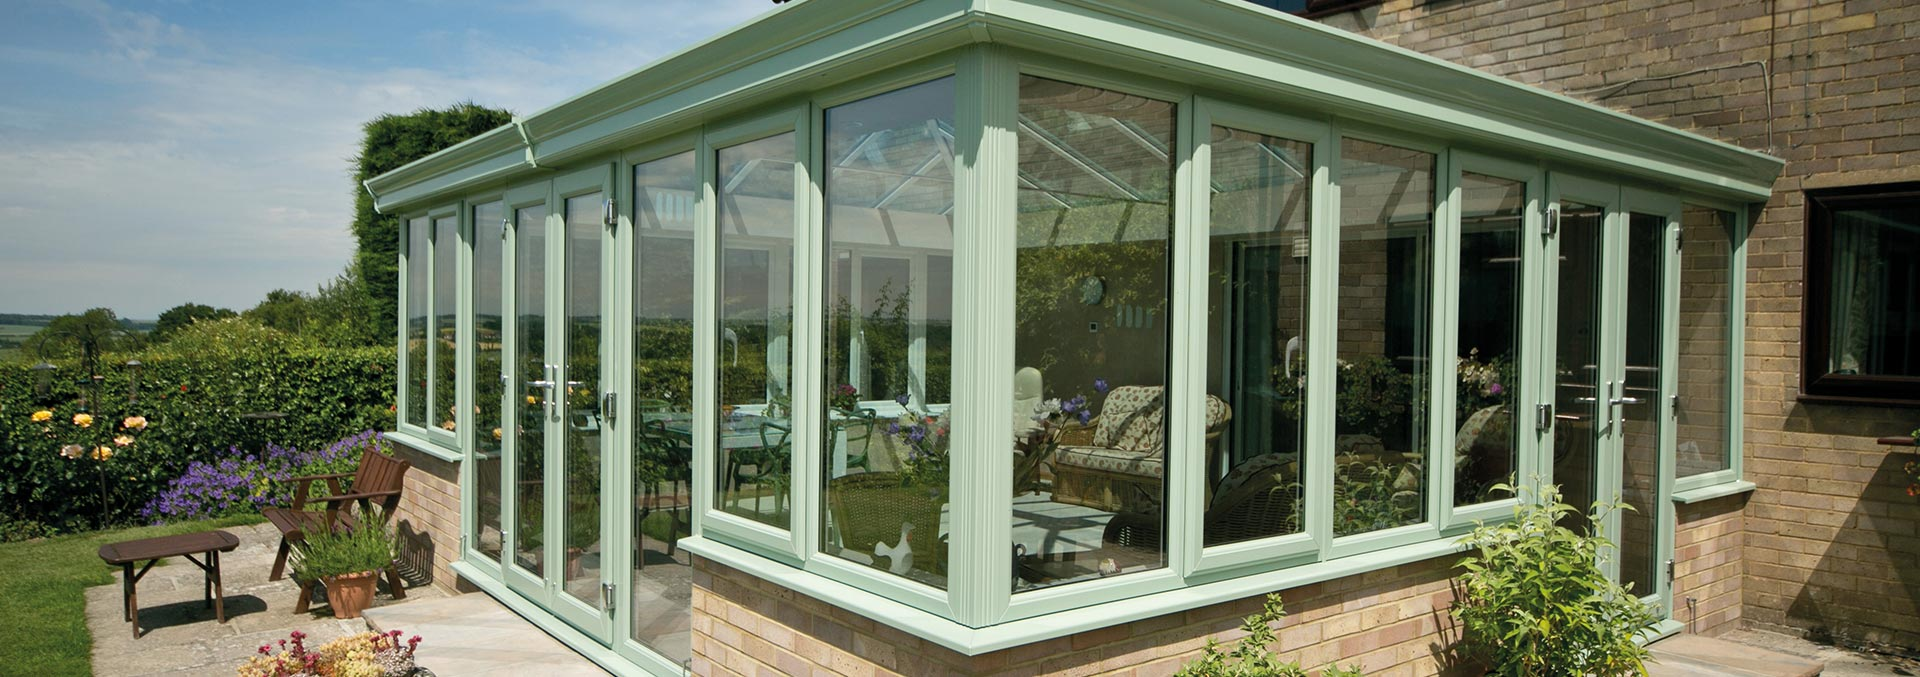 Green glazed conservatory